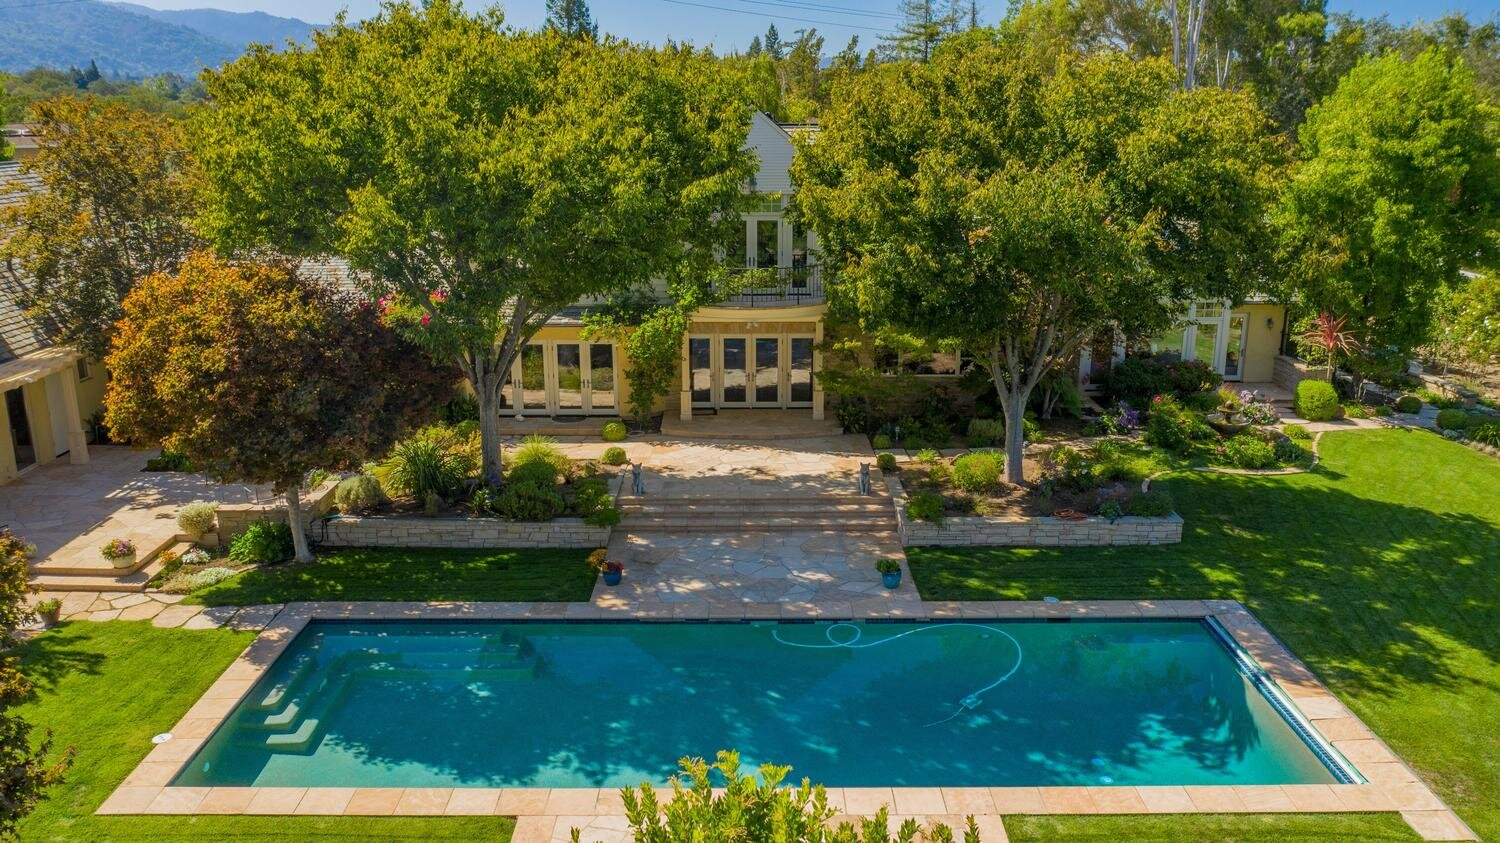 14833 Karl Ave Monte Sereno CA-large-073-103-Aerial Pool View to Back of-1500x843-72dpi.jpg